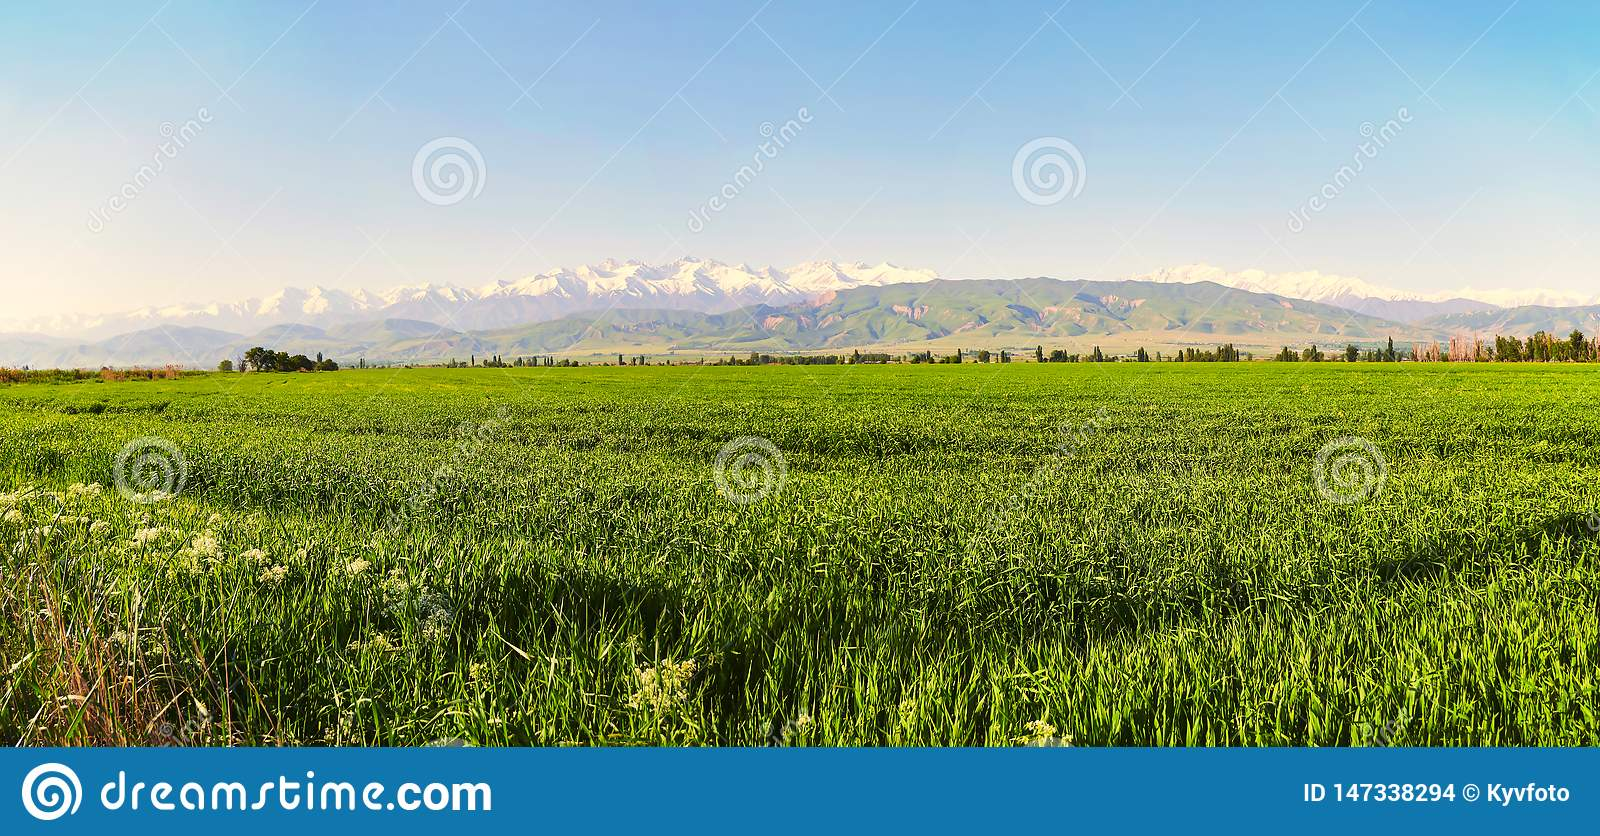 Mountain landscape. Fresh green meadows at sunrise in springtime, mountains lit by the rising sun